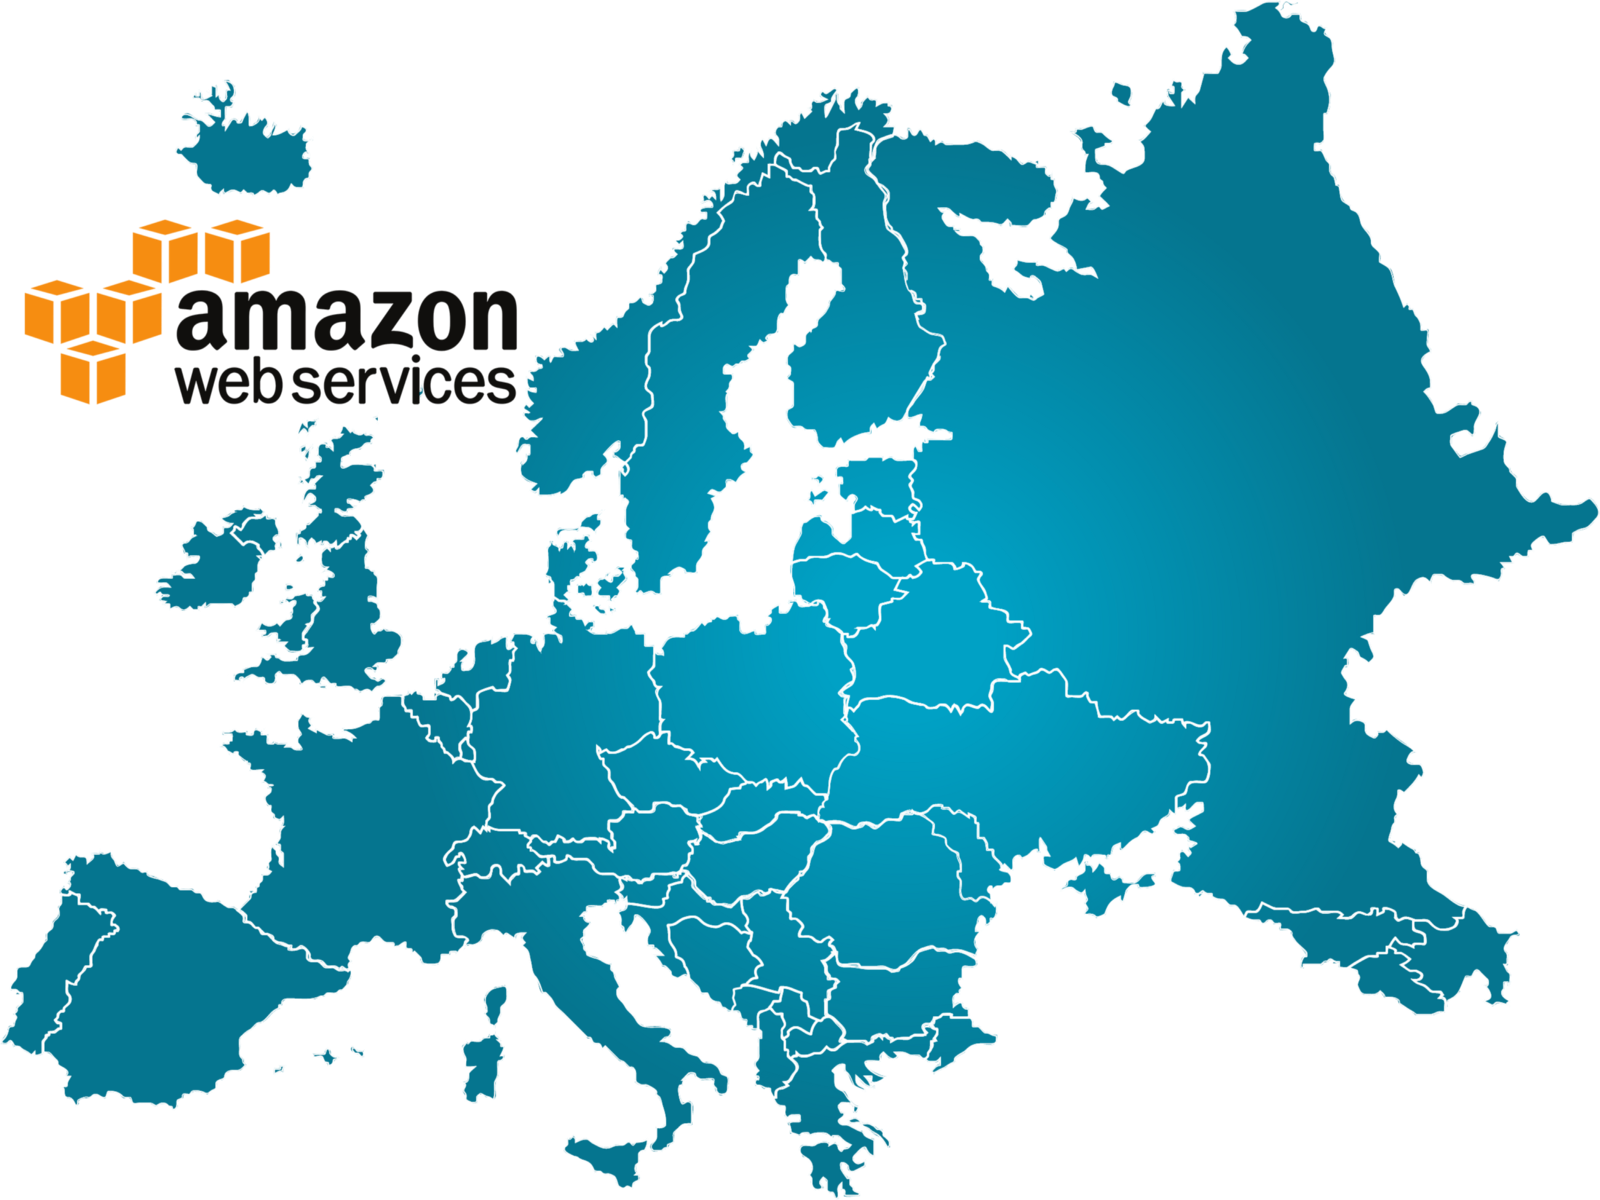 eu-south-1: The next European AWS region? – Bert vd Lingen – Medium